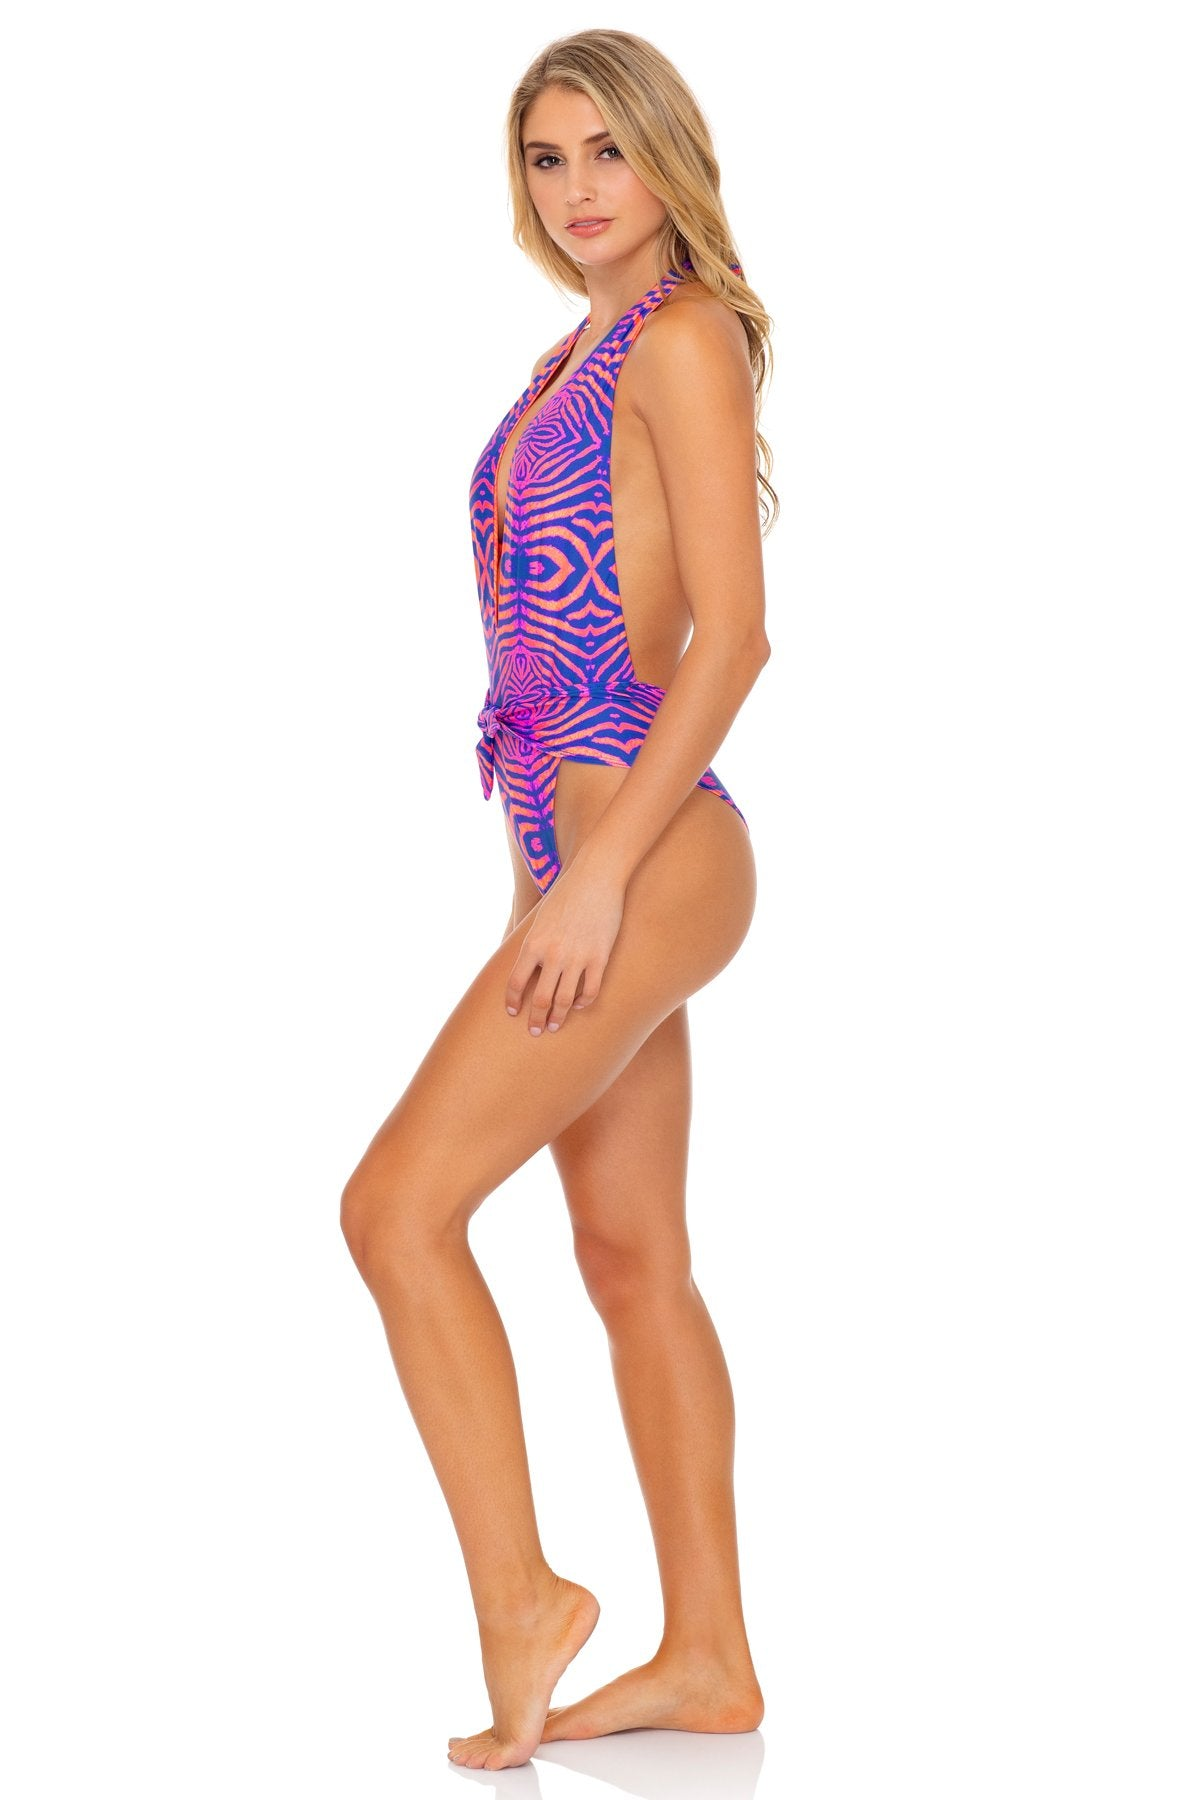 PUERTO AVENTURA - One Piece Bodysuit • Multicolor